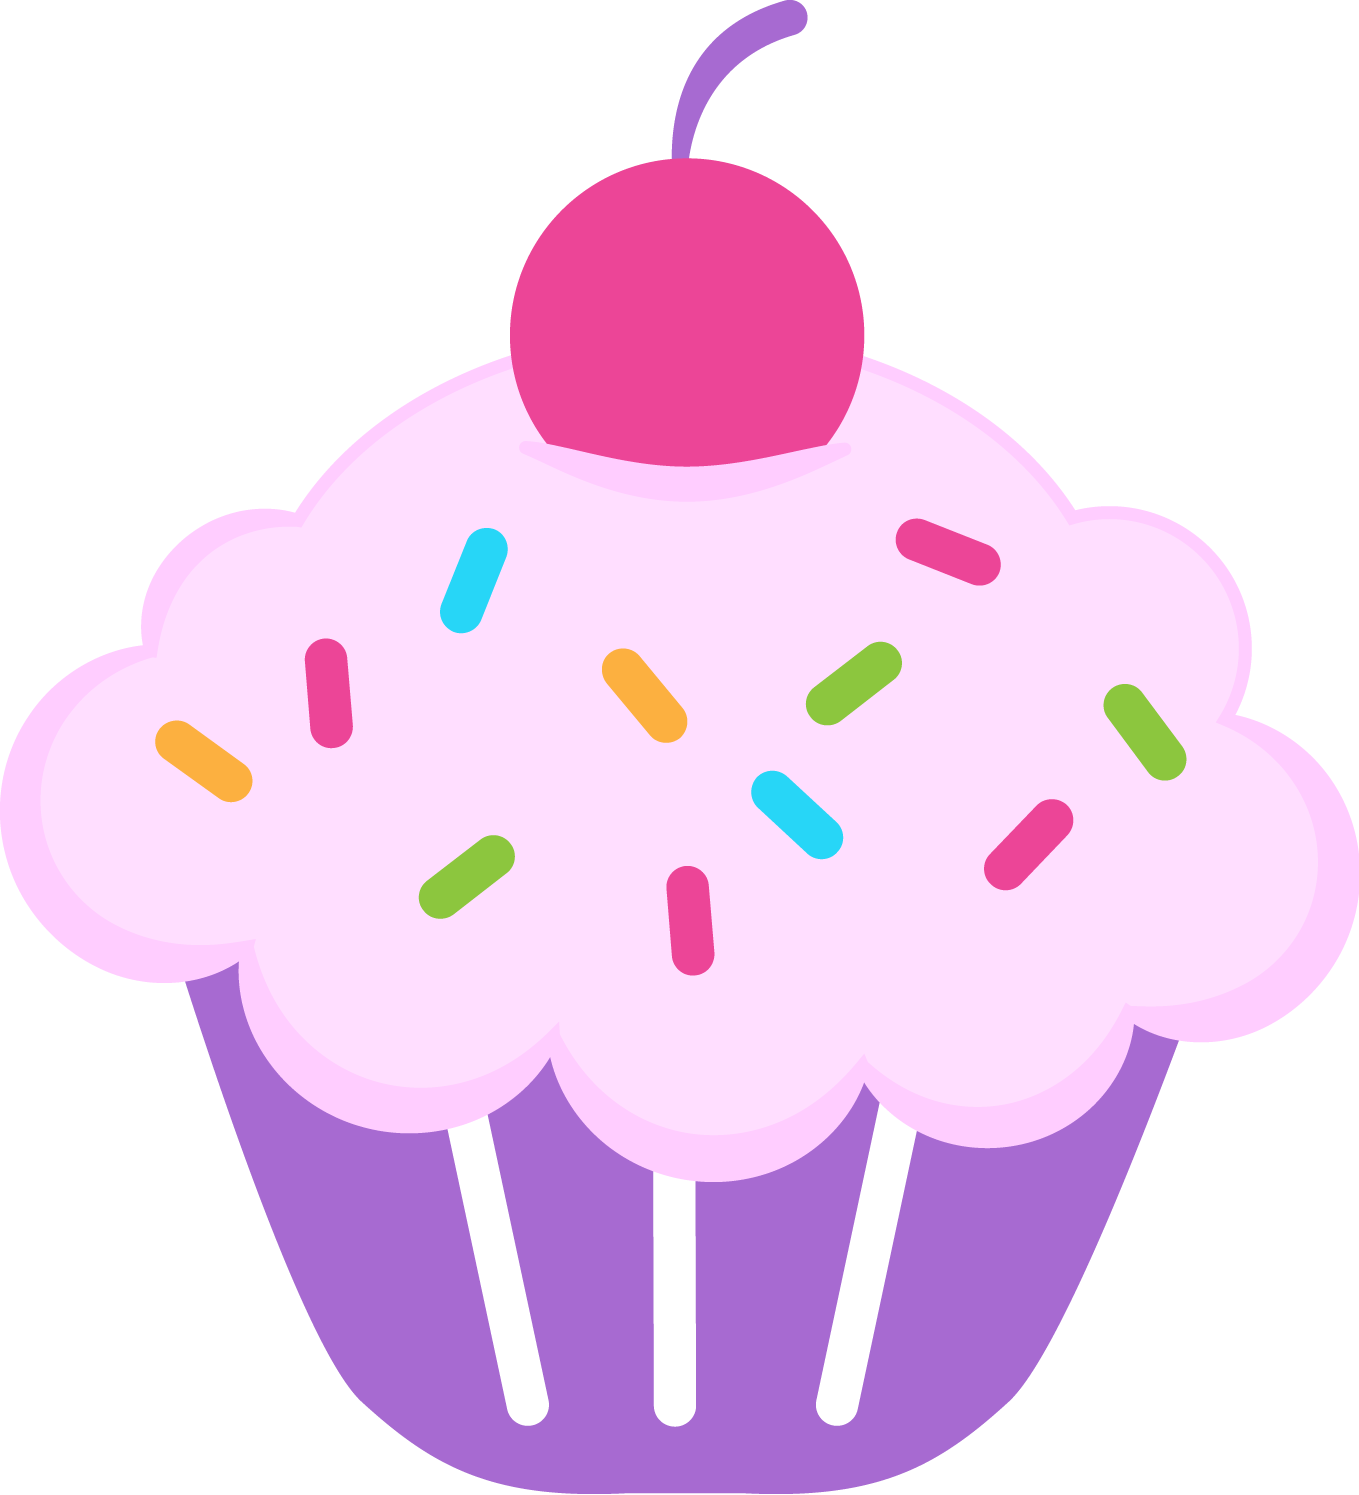 creative classroom may 2012 mi debilidad pinterest cute birthday cupcake clipart cute cupcake clipart with faces